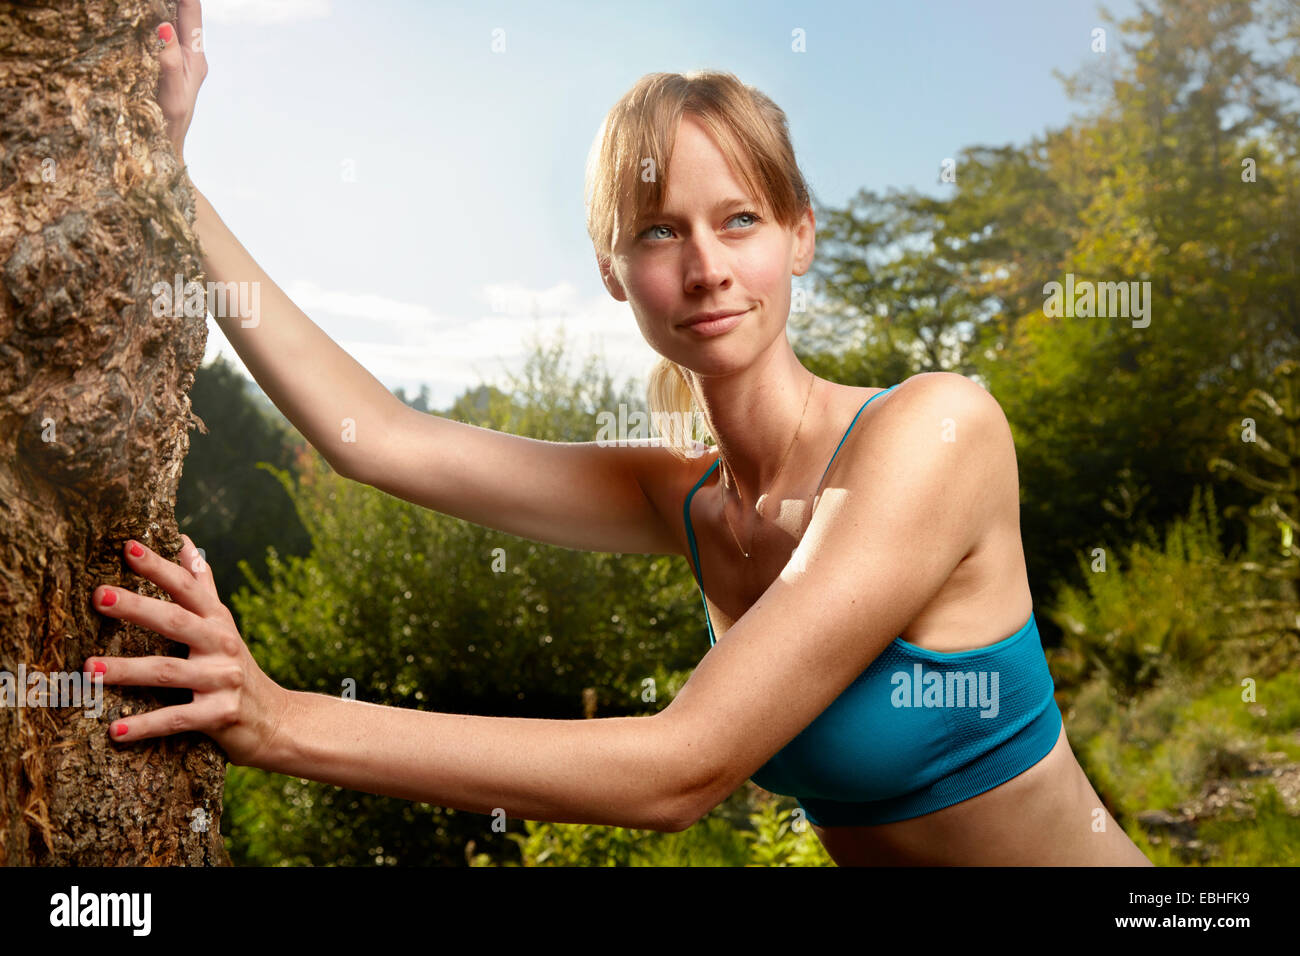 Female runner leaning against rock in park warming up - Stock Image